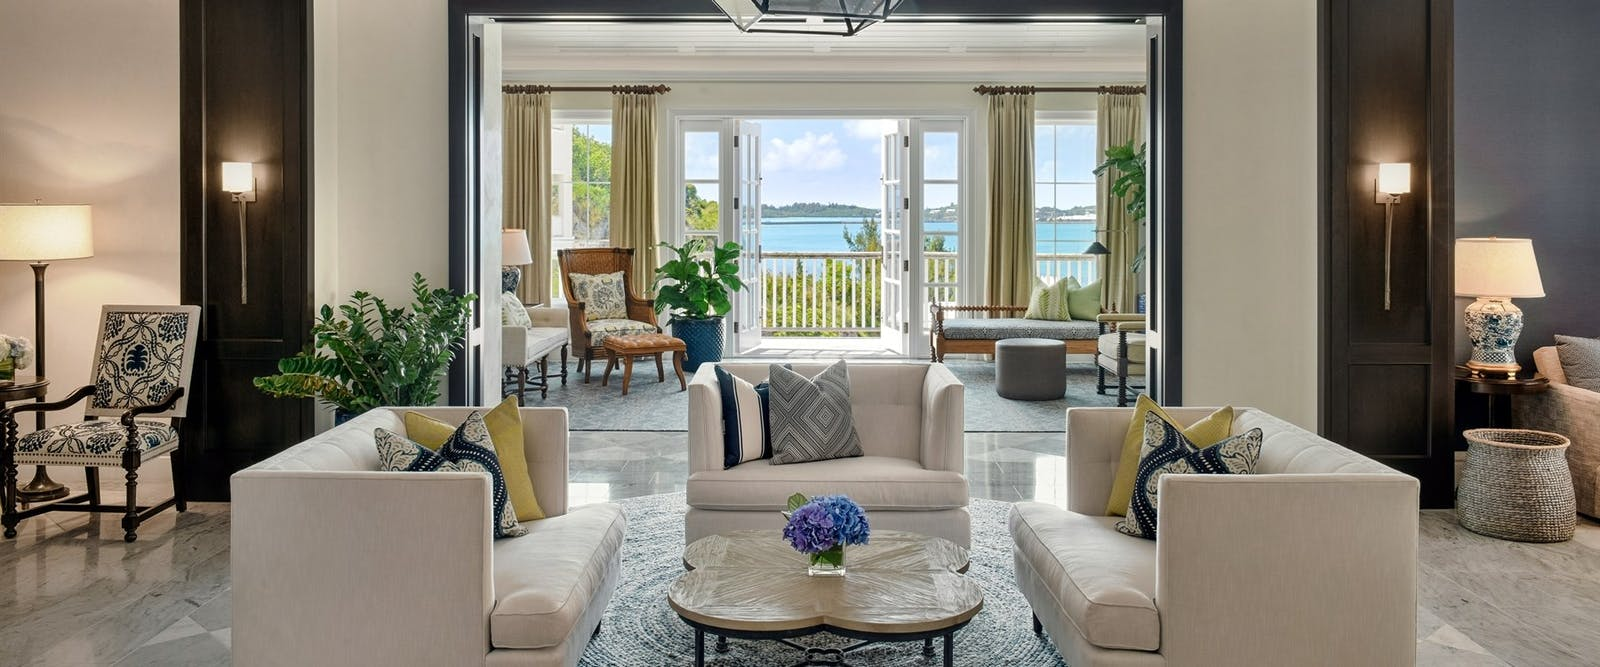 Front Desk Lobby at Rosewood Tuckers Point, Bermuda